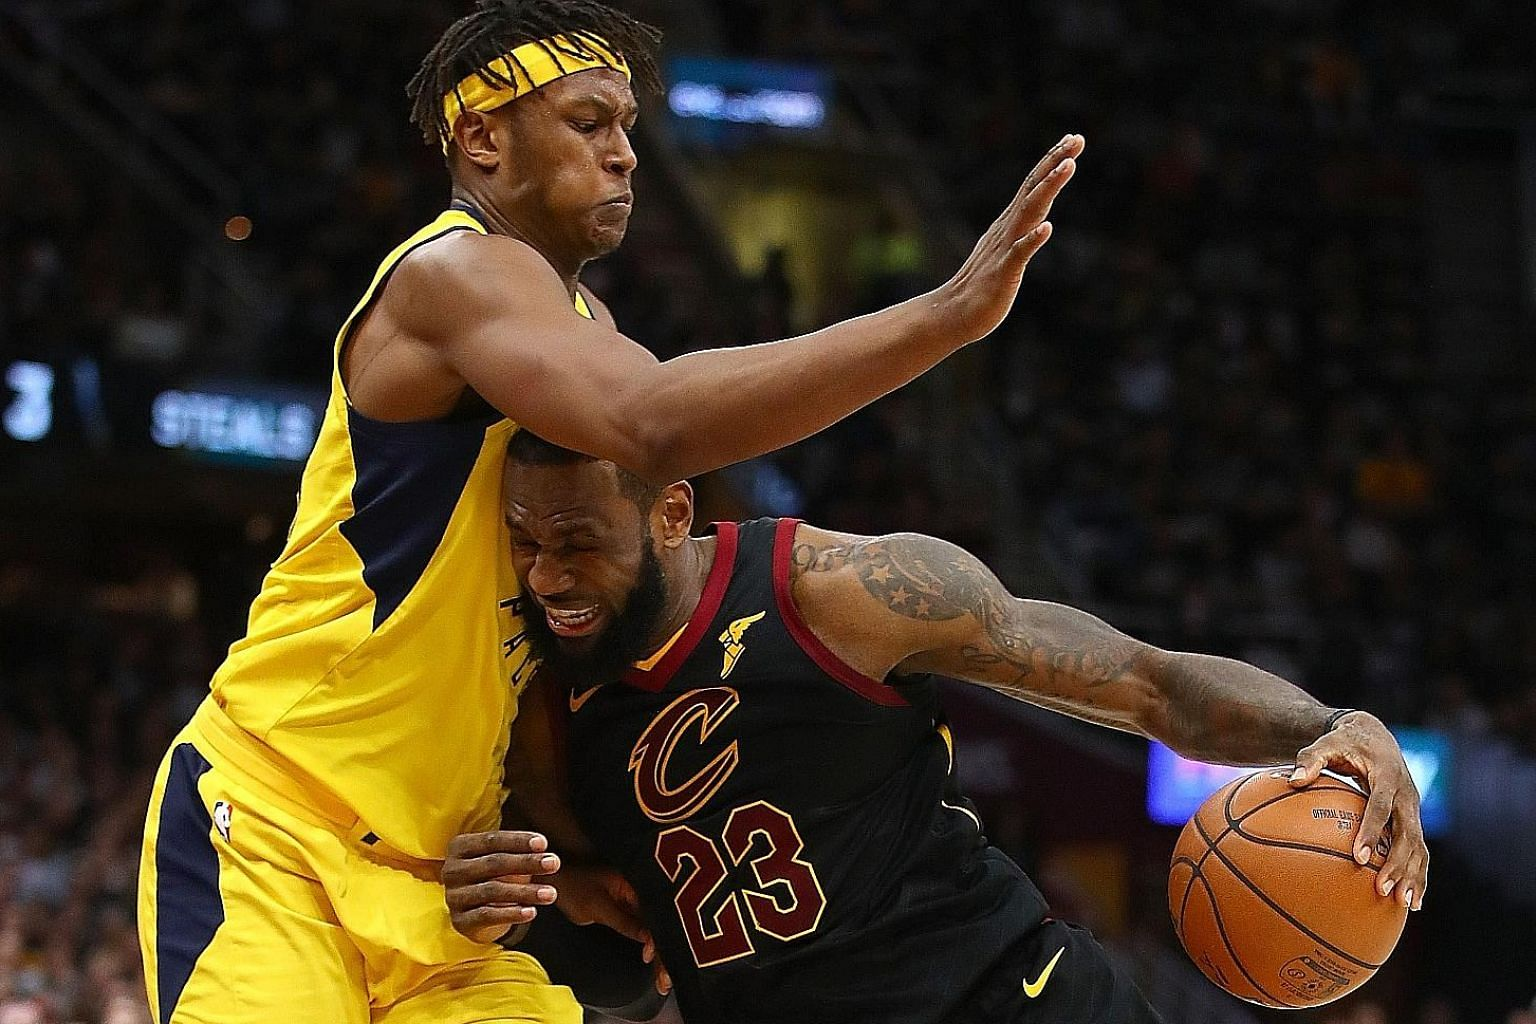 Cavaliers star LeBron James trying to drive around Pacers centre Myles Turner during the second half in Game 7 of the NBA Eastern Conference quarter-finals at Quicken Loans Arena on Sunday. James finished with 45 points.